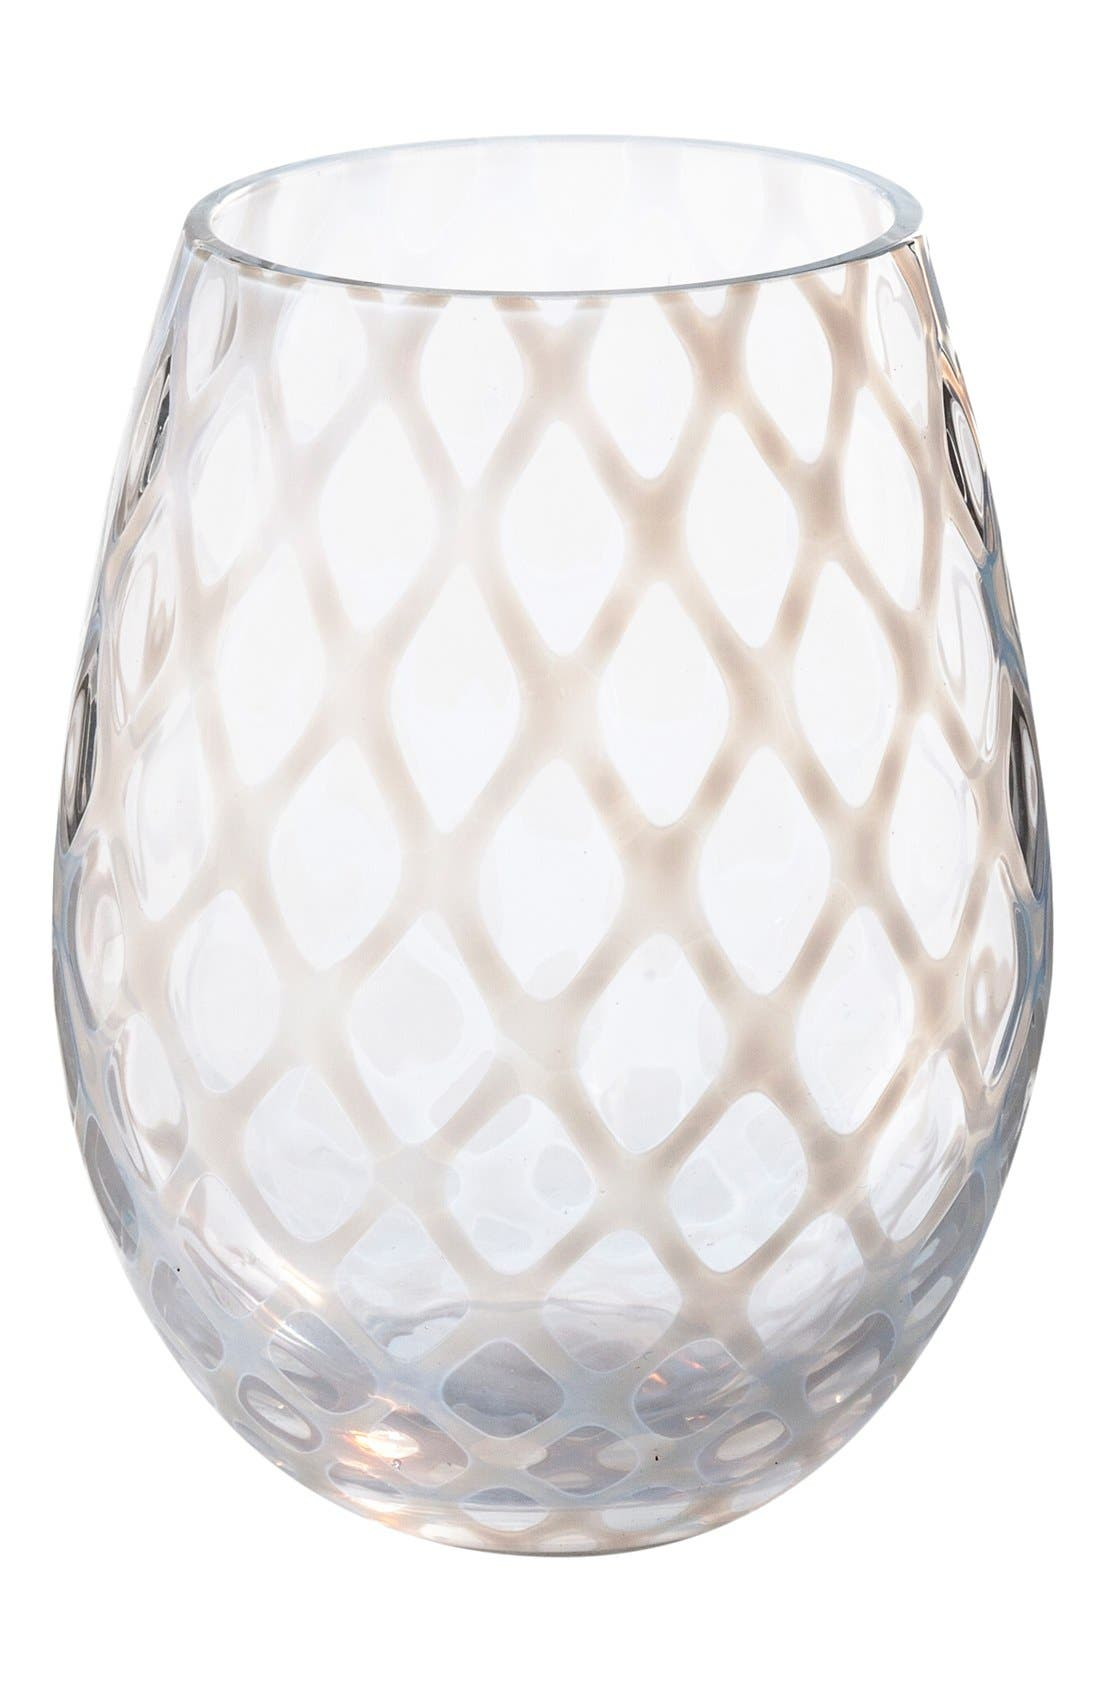 Alternate Image 1 Selected - Rosanna 'Lattice' Stemless Wine Glasses (Set of 4)